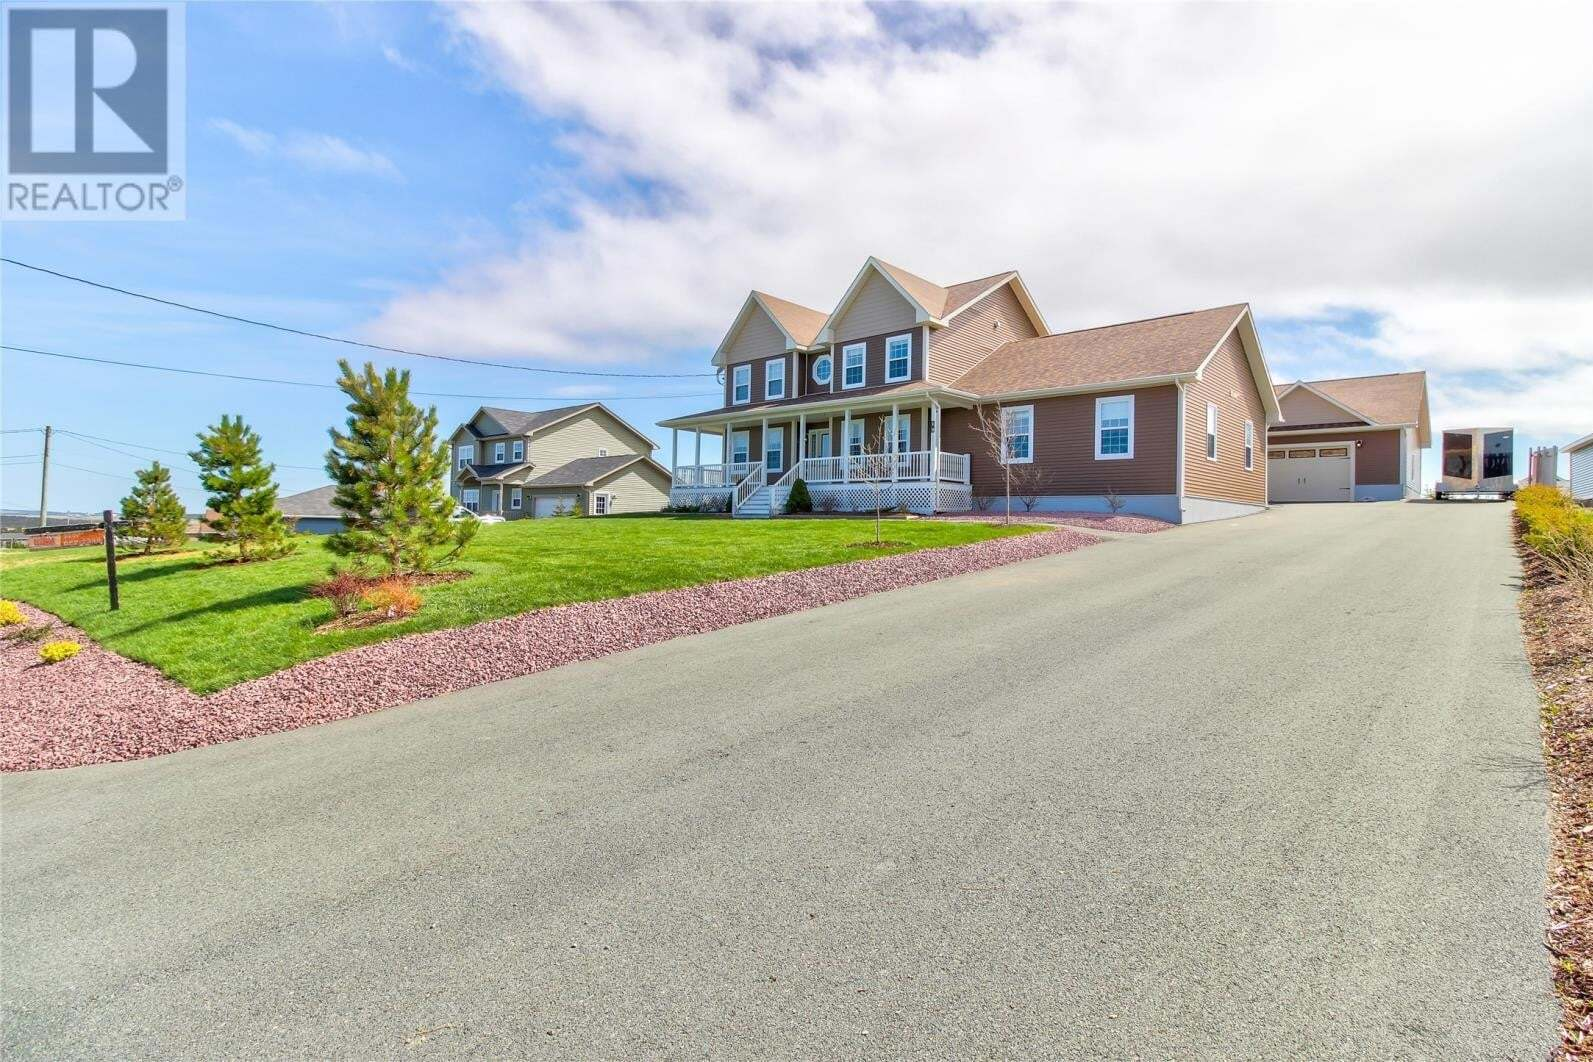 House for sale at 18 Woodland Dr Portugal Cove Newfoundland - MLS: 1213316